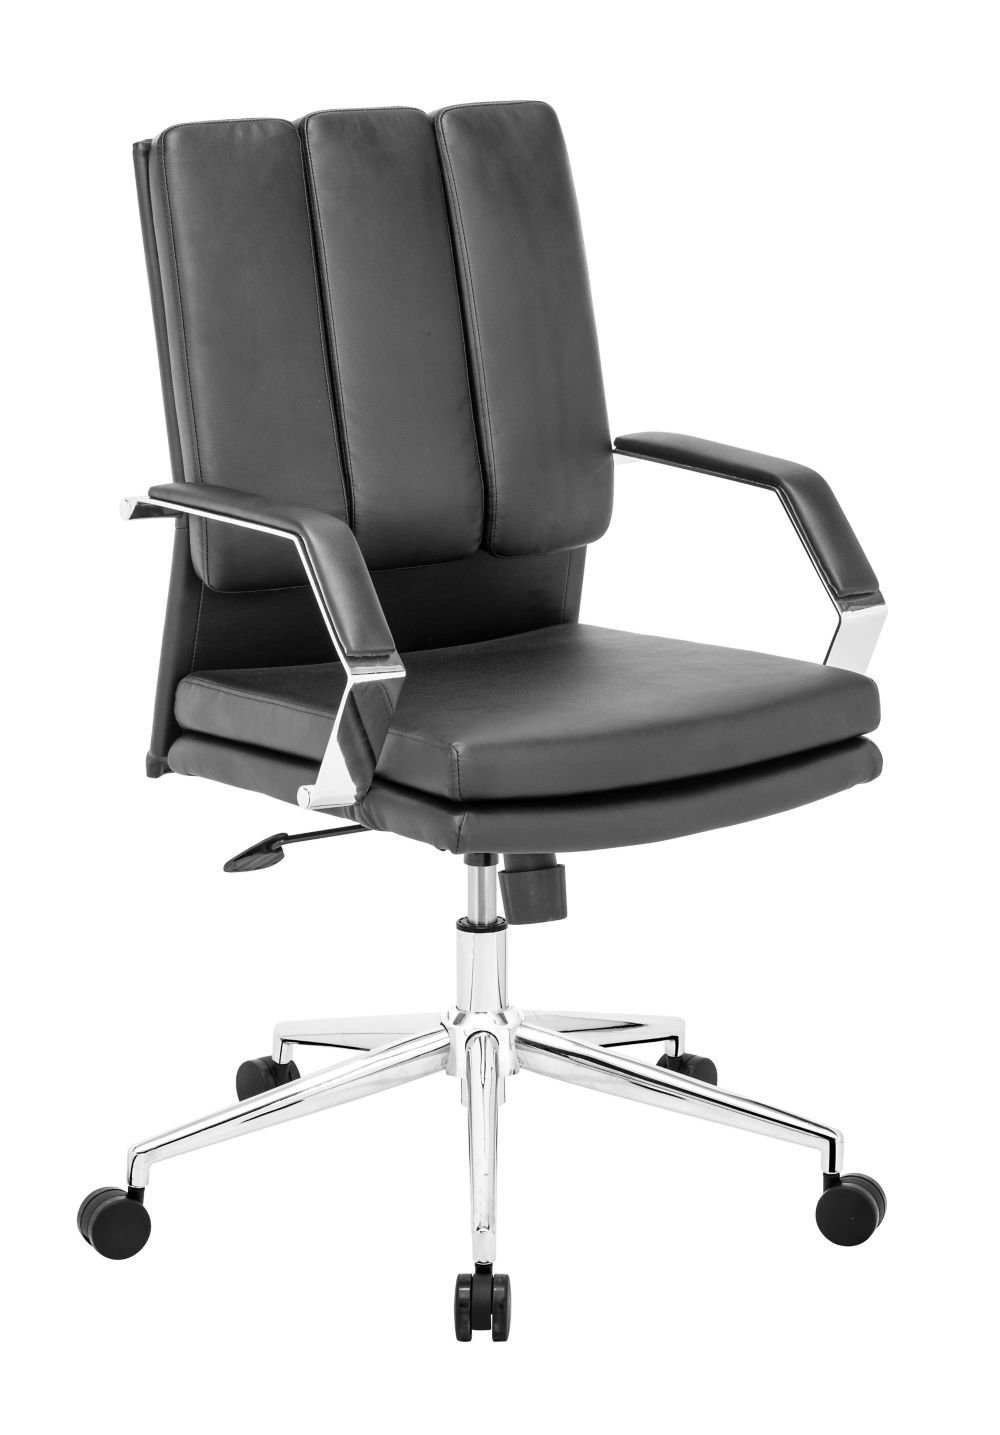 """Director Pro Office Chair Black Dimensions: 27.5""""W x 27.5""""D x 38-40.9""""H Weight: 41 lbs"""